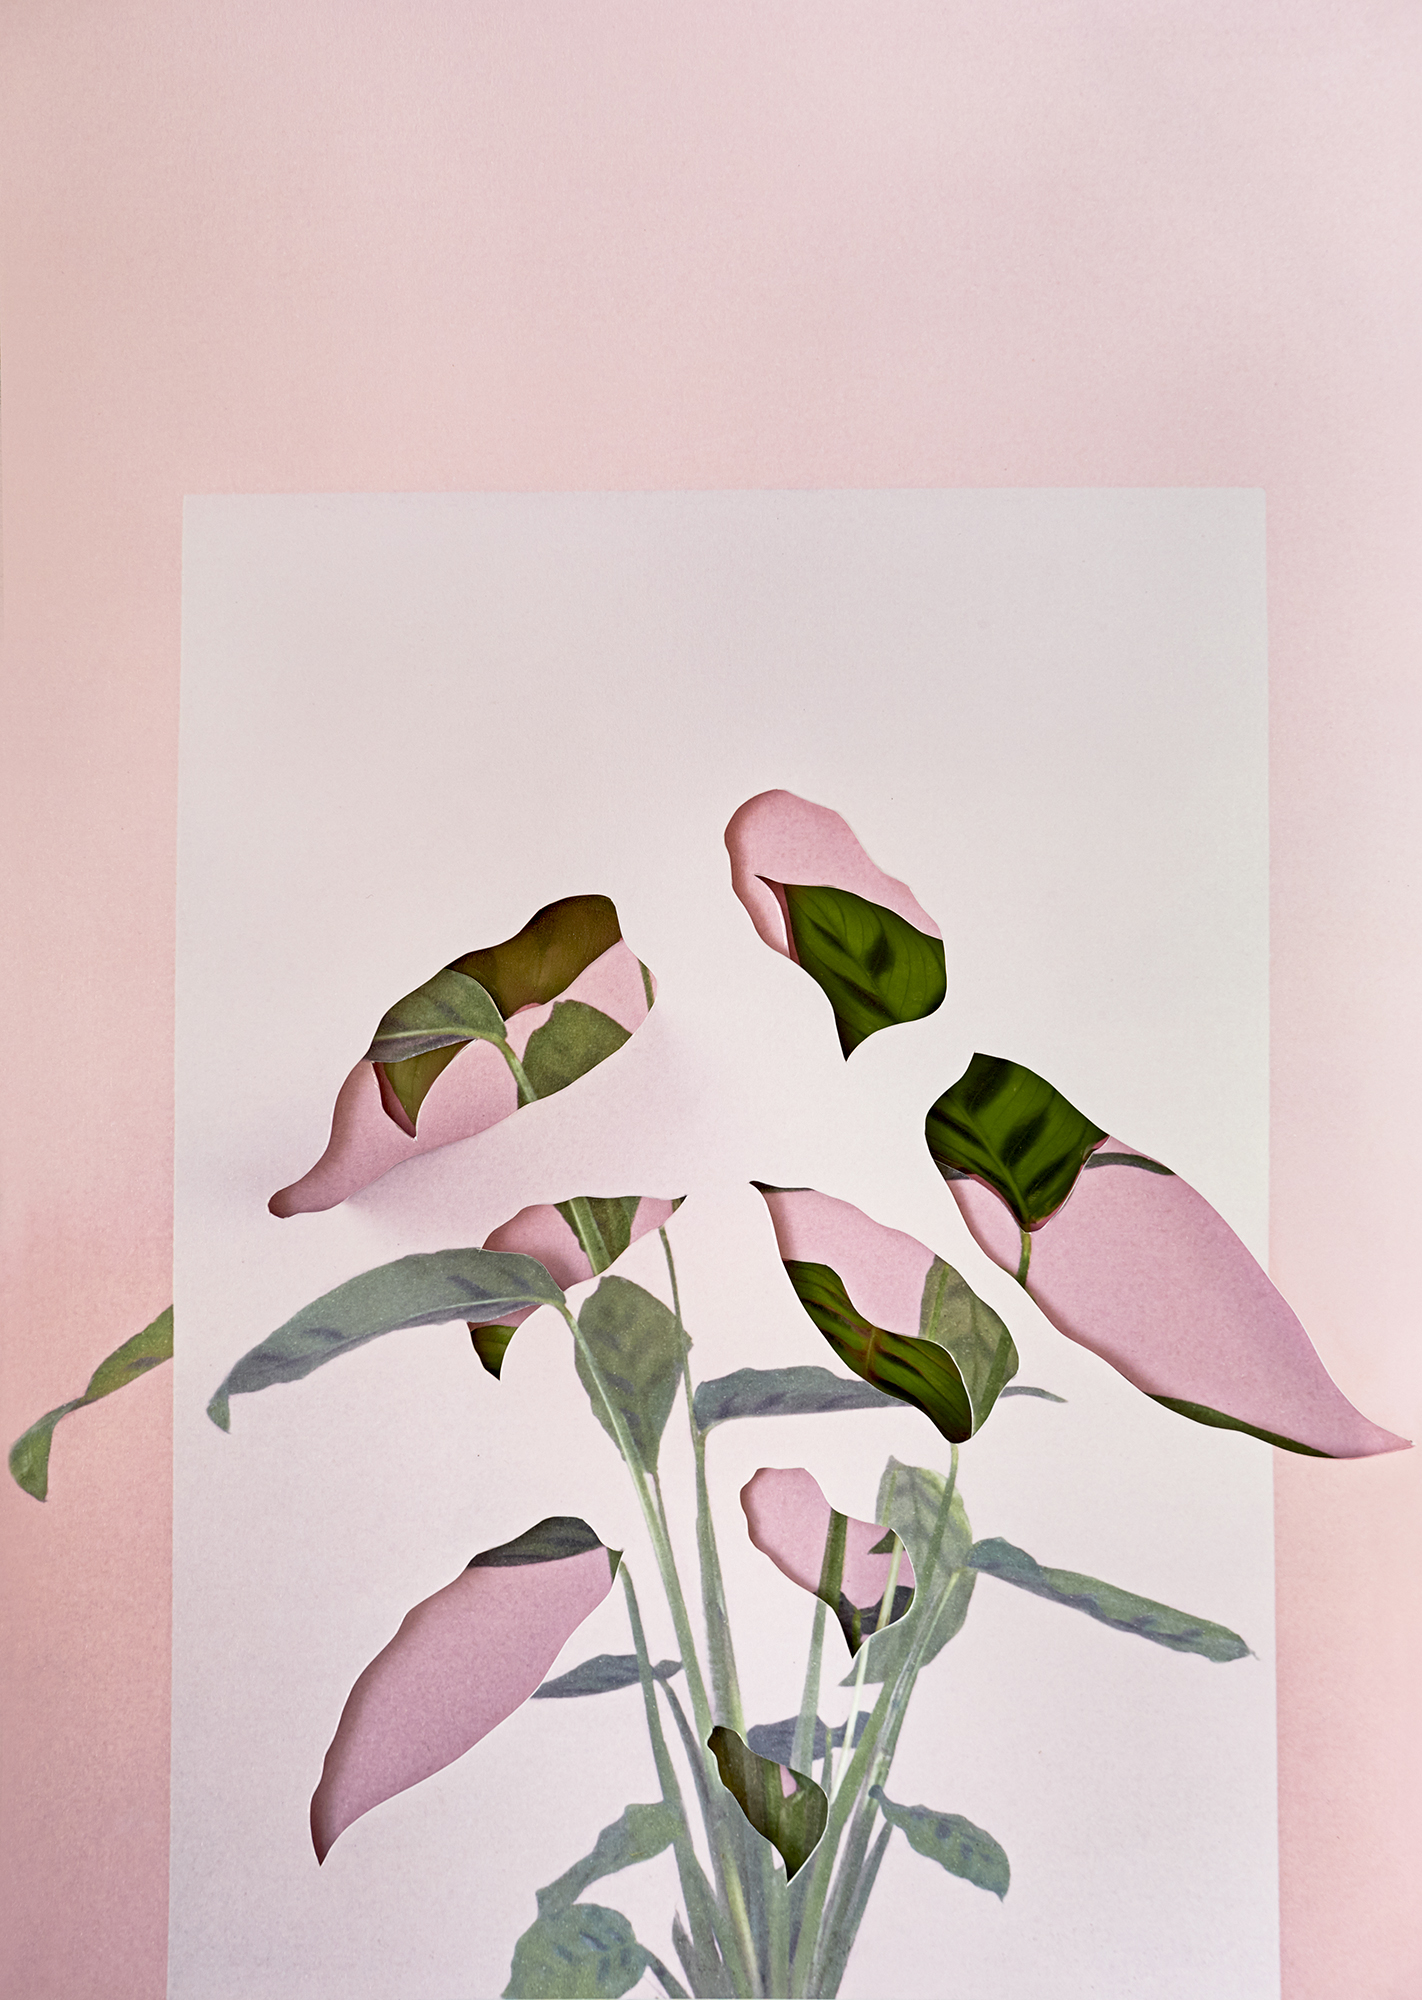 Alma Haser,  Calatheas , 2018  Layered and cut digital pigment prints (3 layers), 47 x 35 cm total (approx. 18.5 x 13.75 in), edition of 7   Inquire